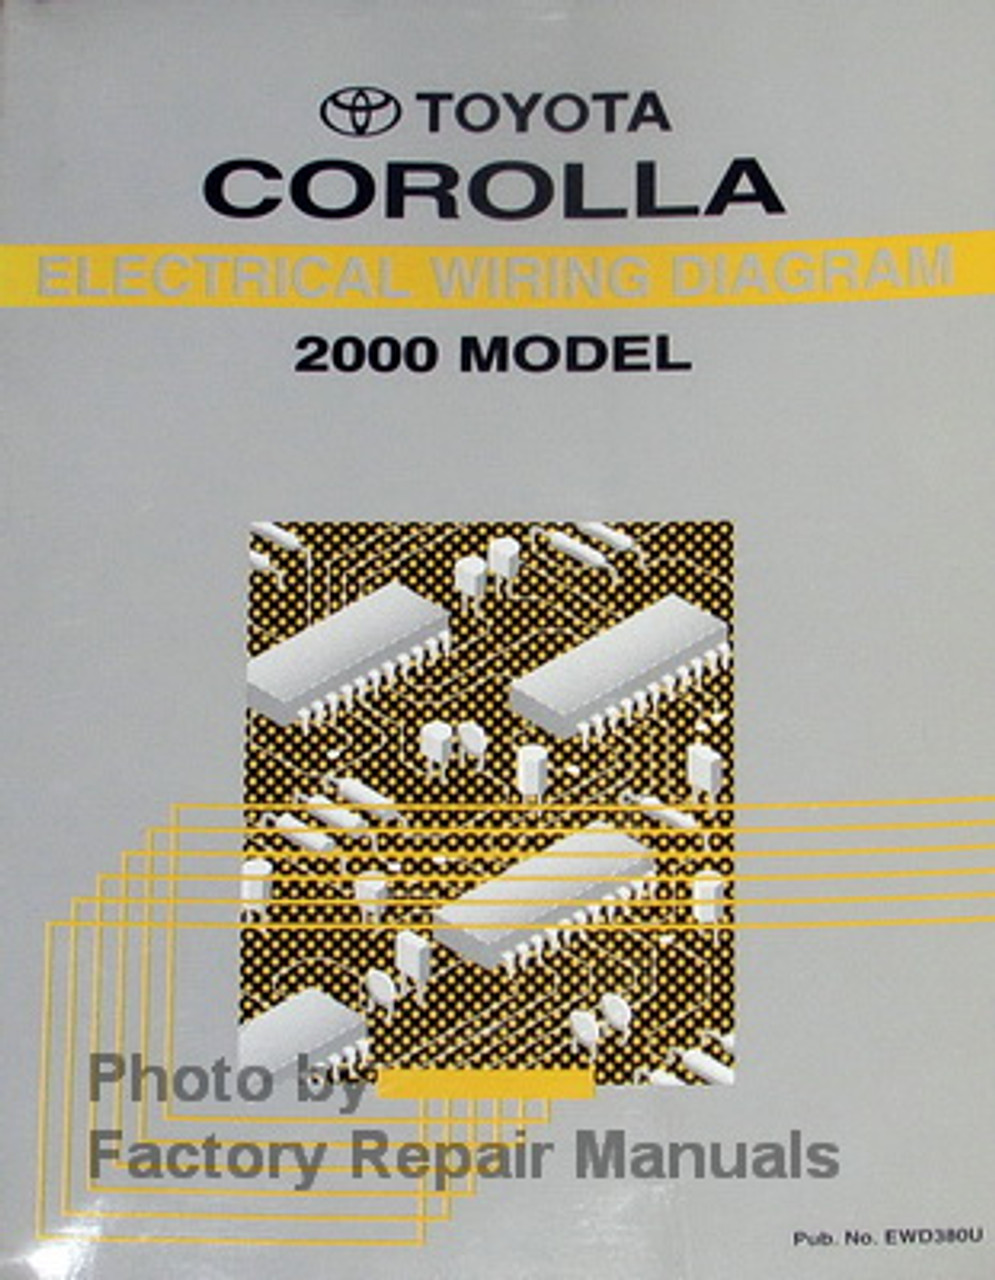 2000 toyota corolla engine diagram 2000 toyota corolla electrical wiring diagrams original factory  2000 toyota corolla electrical wiring